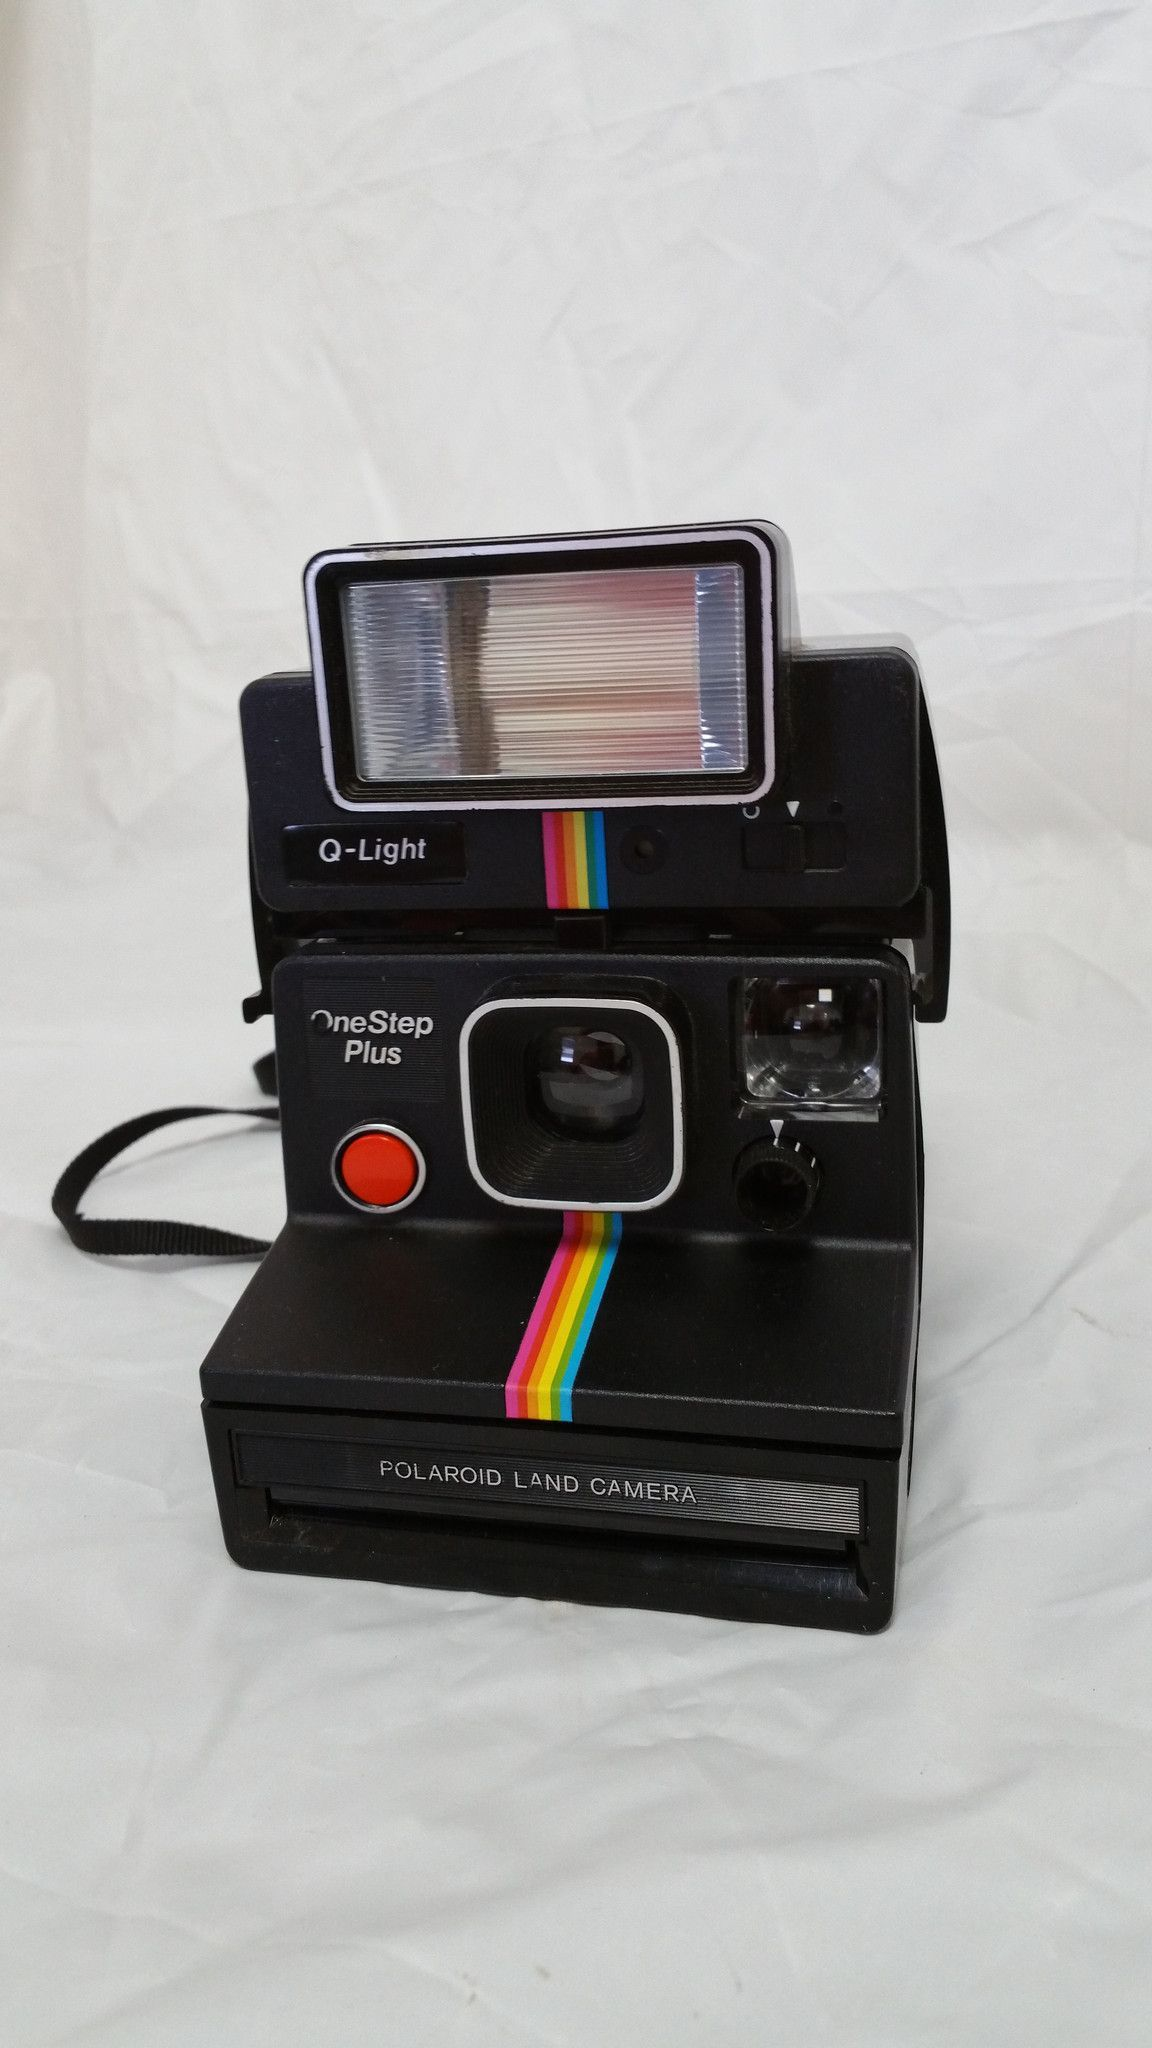 Polaroid One Step Plus Instant Camera W Q Light Includes Manuals For Camera And Instant Camera Polaroid One Step Vintage Polaroid Camera